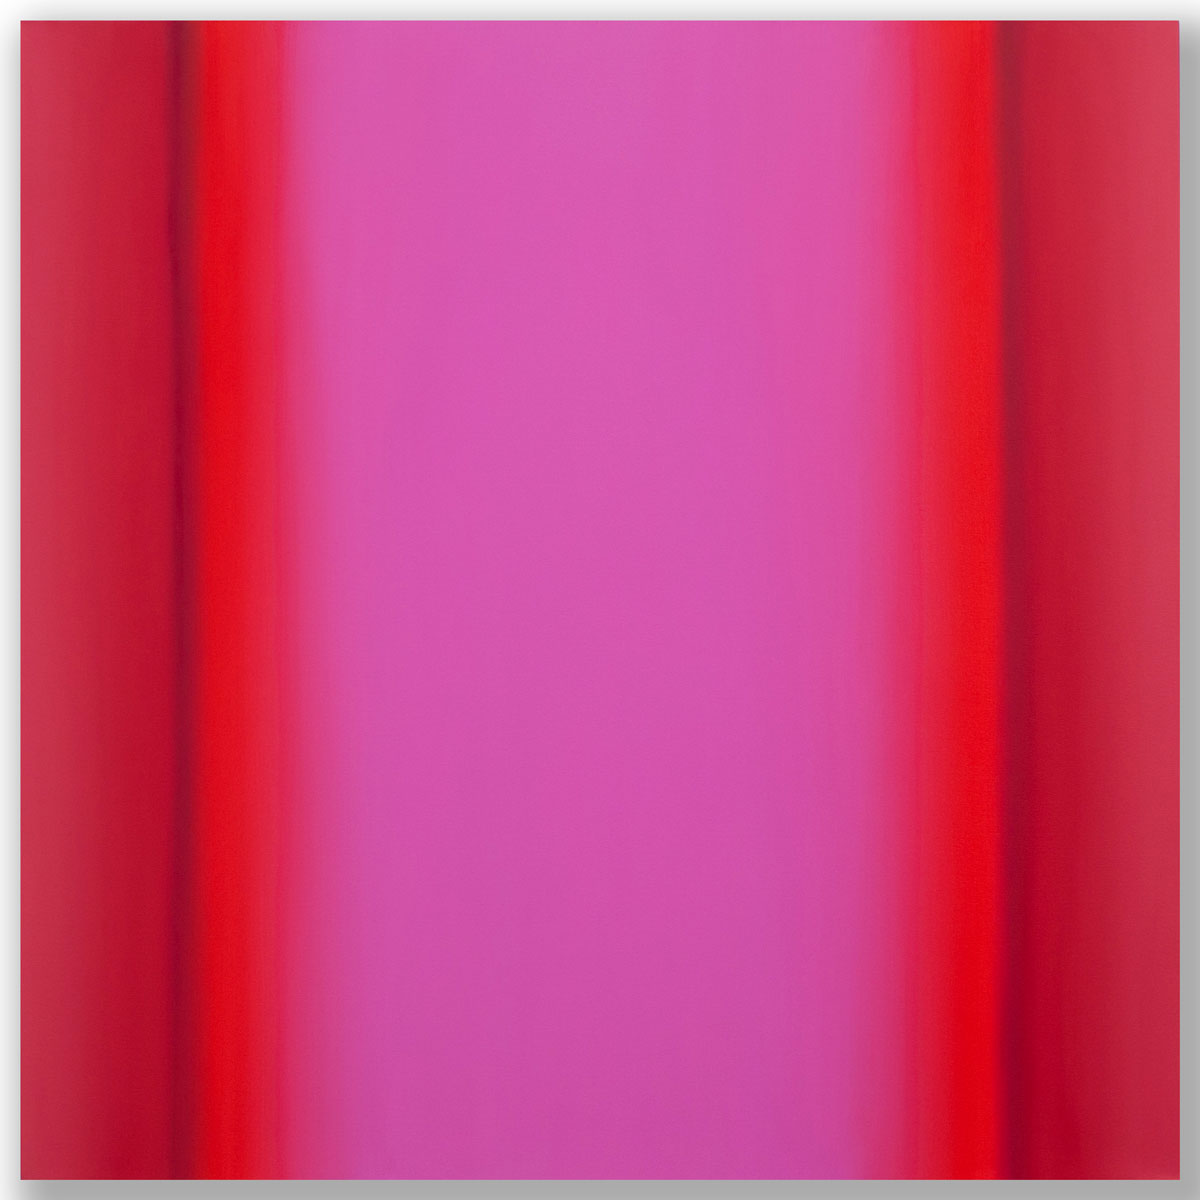 Matter of Light 5-S4848, (Red Green), Matter of Light Series, 2016, oil on canvas custom beveled stretcher, 48 x 48 x 3 in. (122 x 122 x 7 cm.)